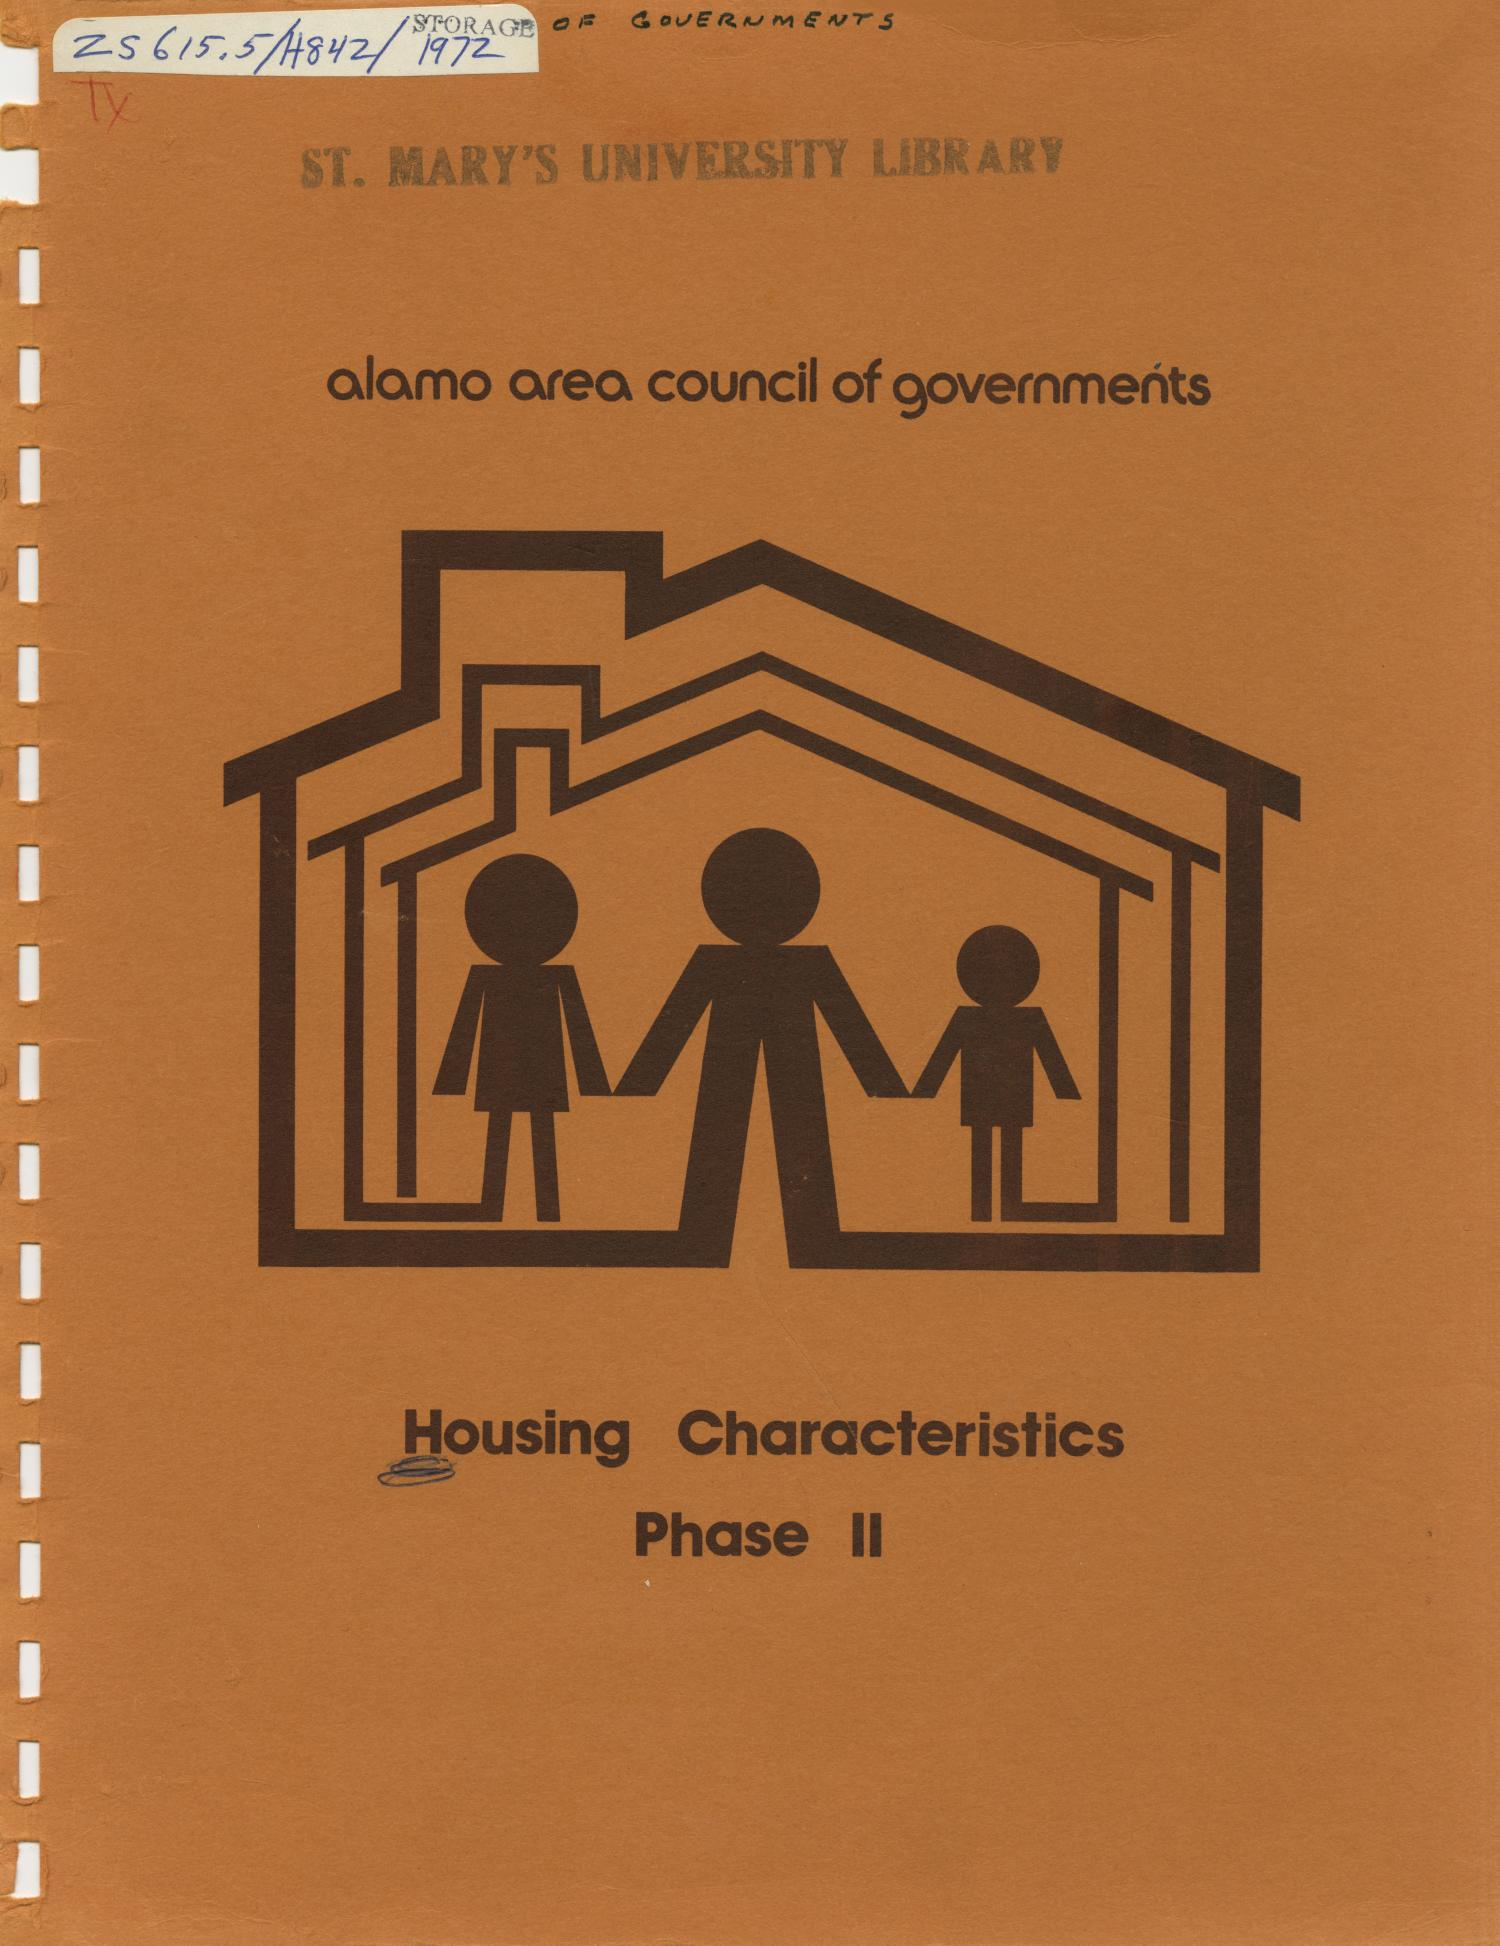 Housing Characteristics Study: Phase 2                                                                                                      [Sequence #]: 1 of 122